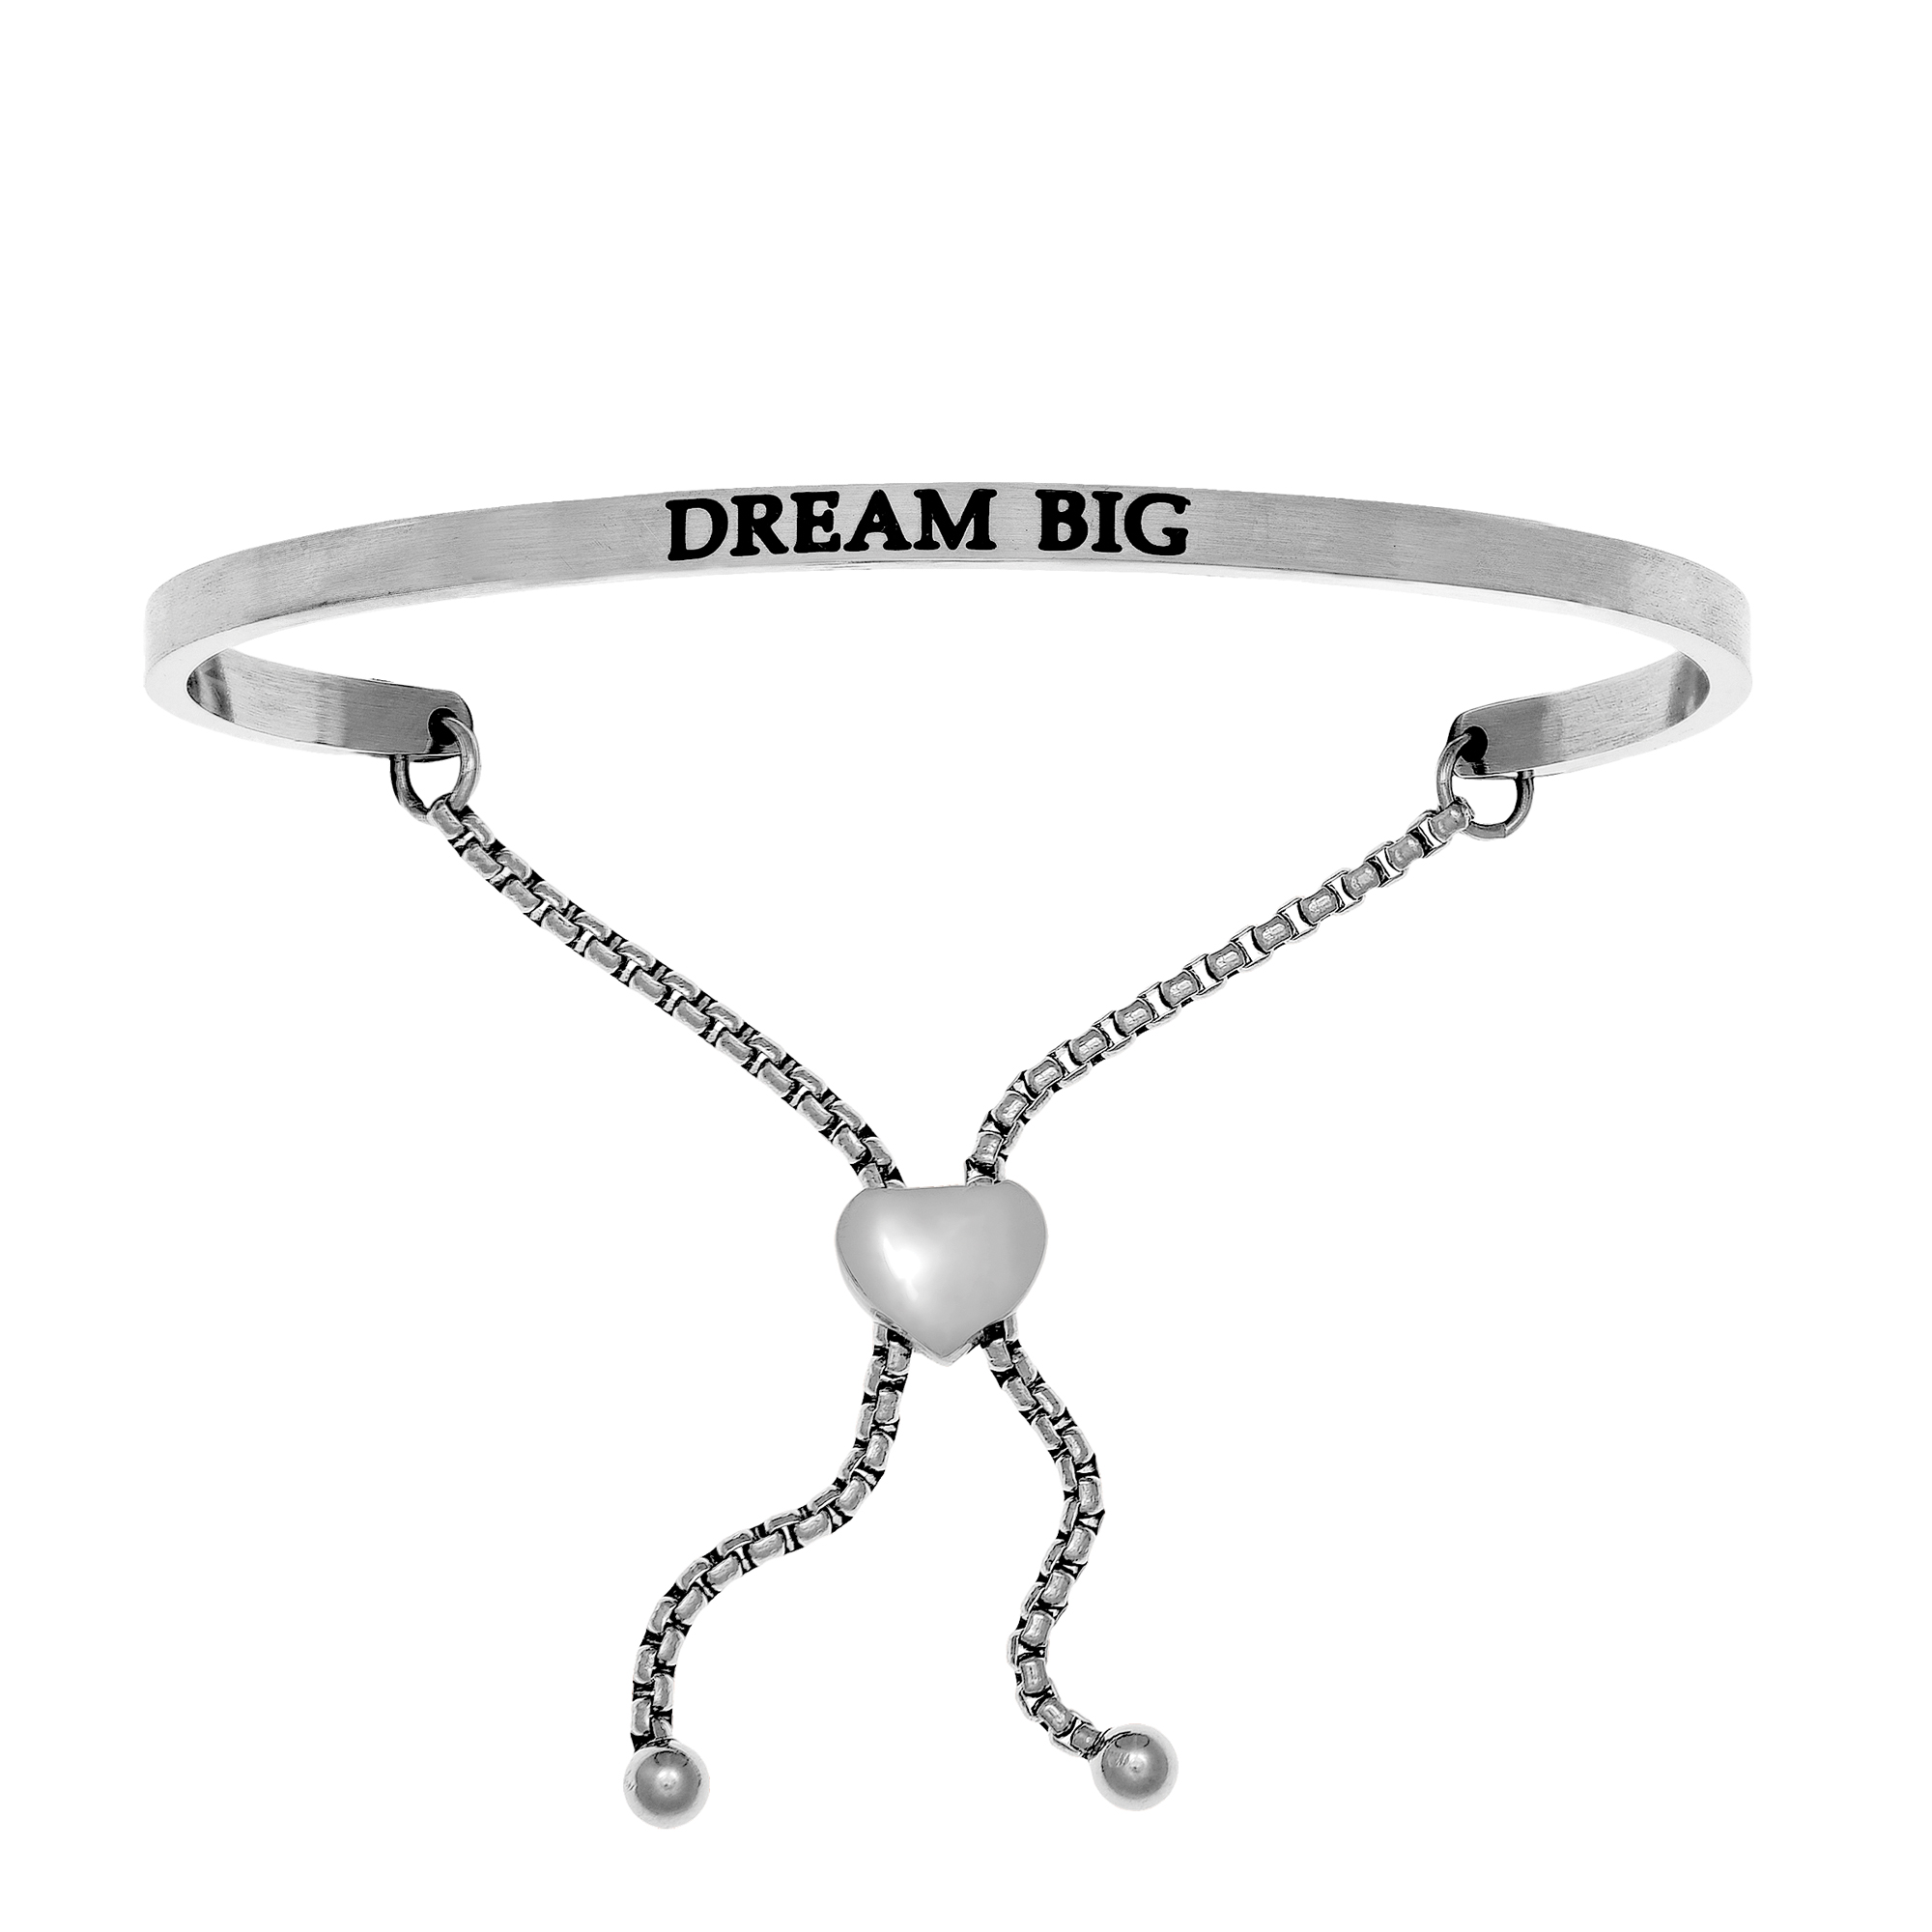 Intuitions Stainless Steel DREAM BIG Diamond Accent Adjustable Bracelet Each of these bracelets carries a personal message of inspiration, spirituality or just plain fun. Meant to be worn alone or stacked together for a smart, contemporary look, they're a great self-purchase or as a gift for family or friends. Intuitions are made of stainless steel and come in two styles standard cuff or friendship and fit practically any wrist. Intuitions Jewelry makes the difference in your daily life by designing and creating bracelets and bangles with motivational quotes to inspire you and your loved ones. Giving back $.25 of each bracelet to BABY2BABY